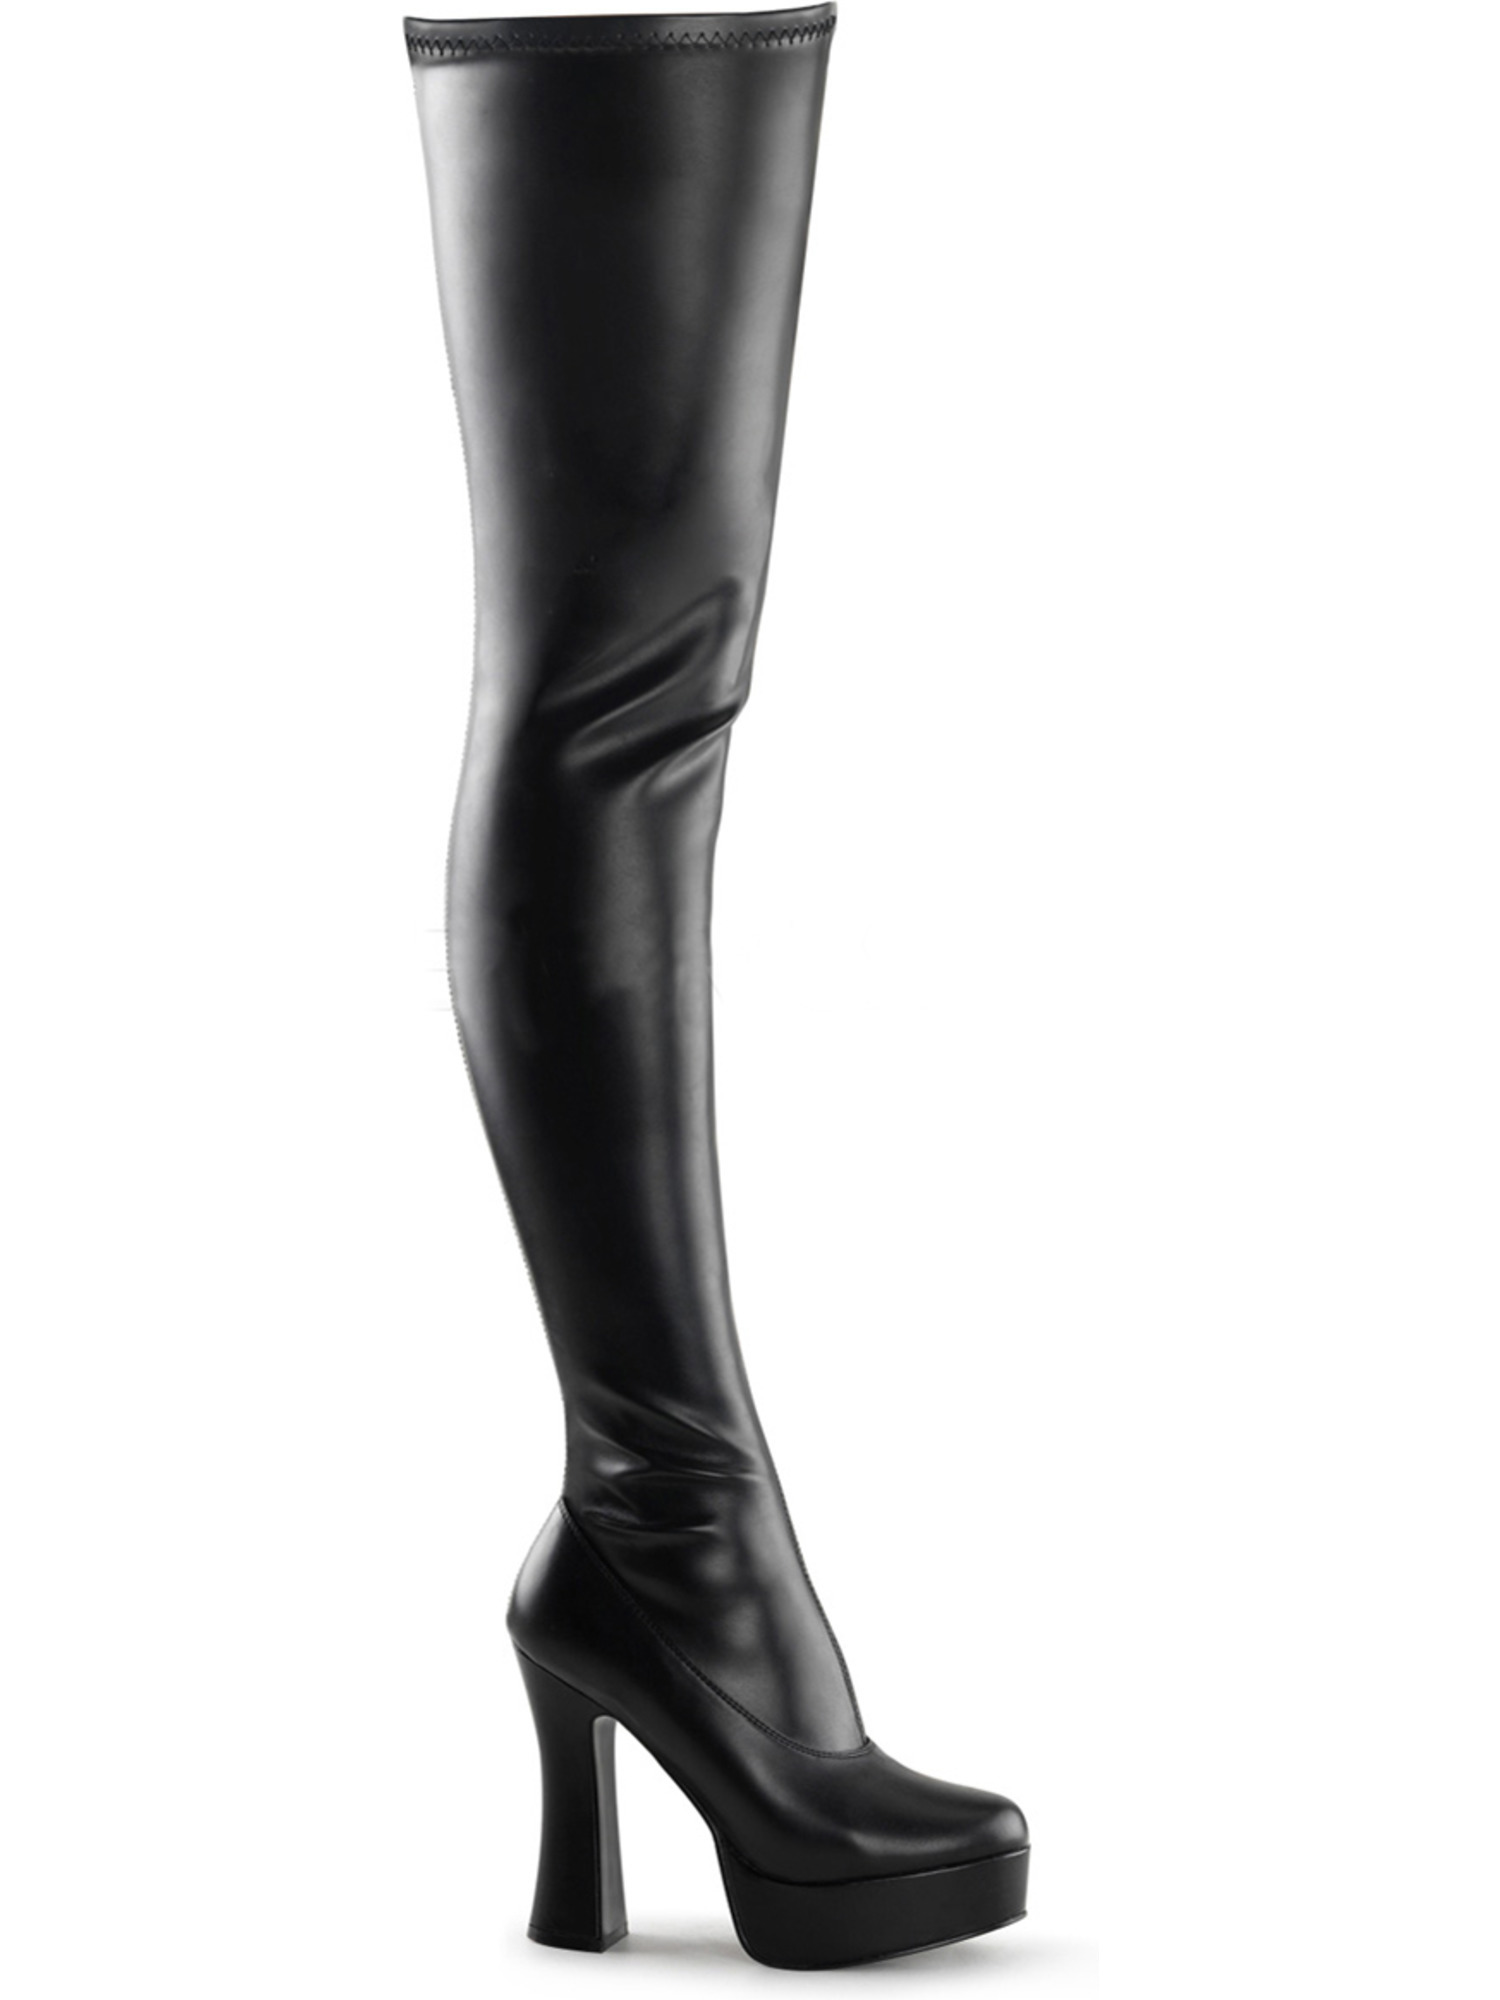 Women Matte Black Stretch Thigh High Boots 5'' with Side Zipper and 5'' Boots Stack Heels e5c233